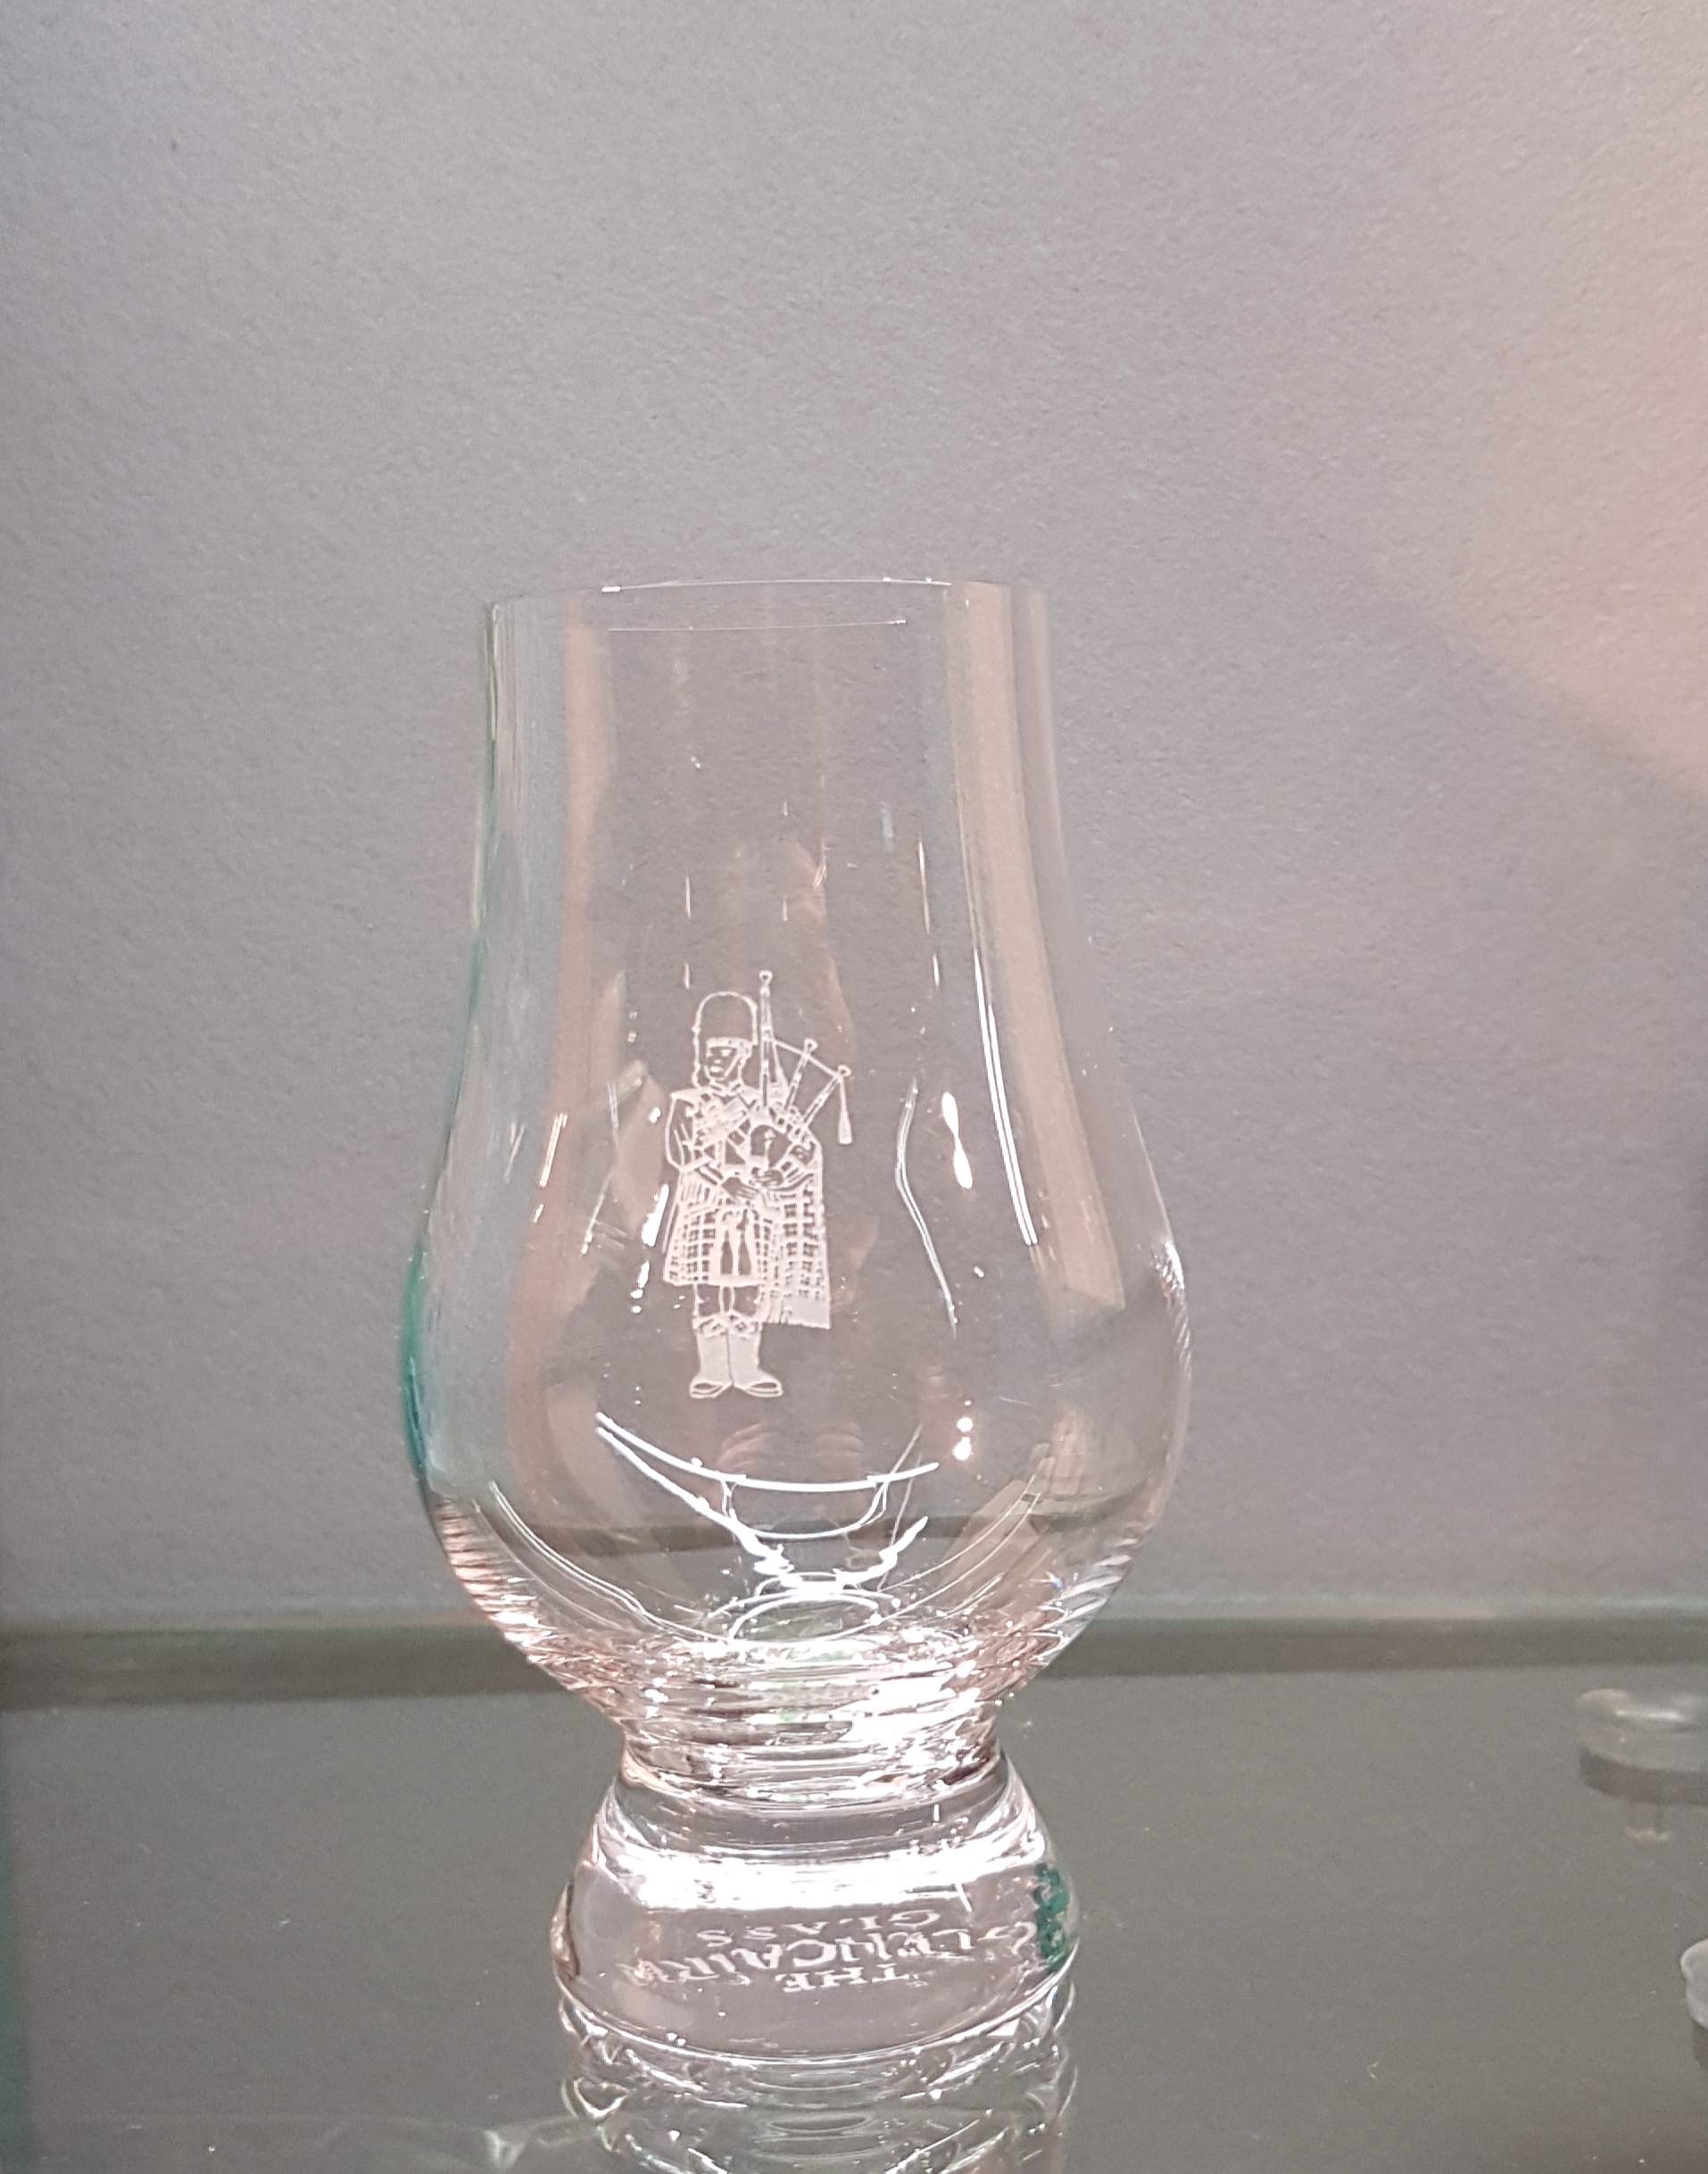 Glencairn Glass - Piper